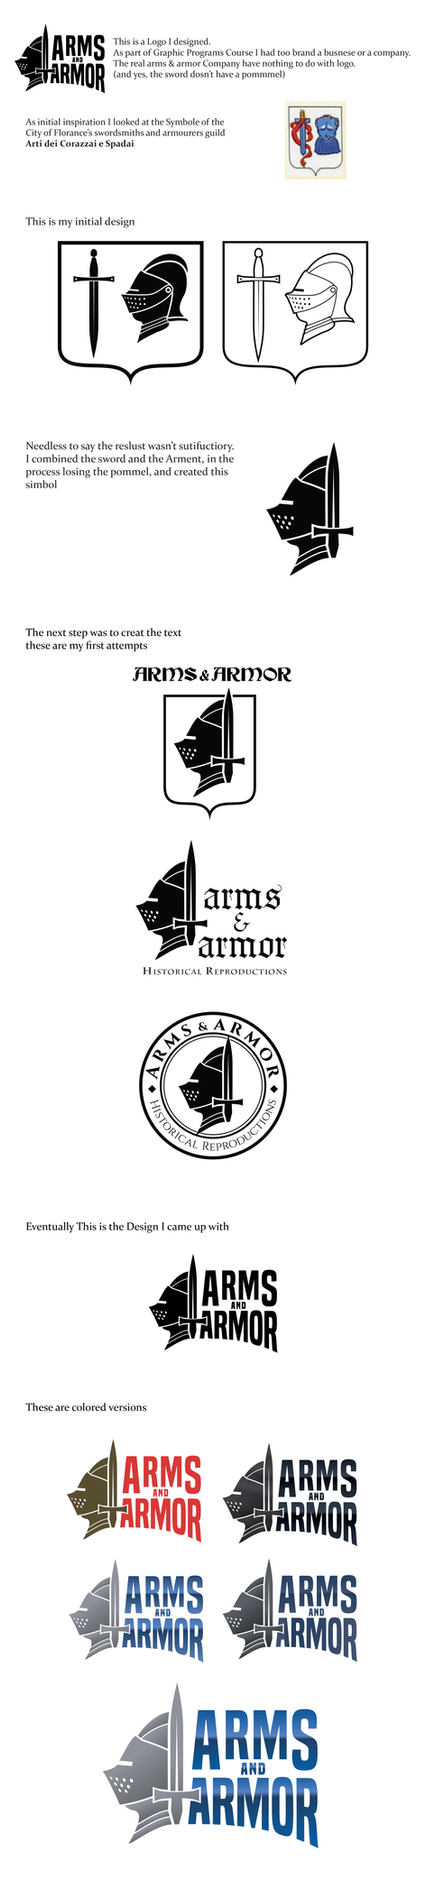 Arms and Armor Logo Redesign by gadyariv